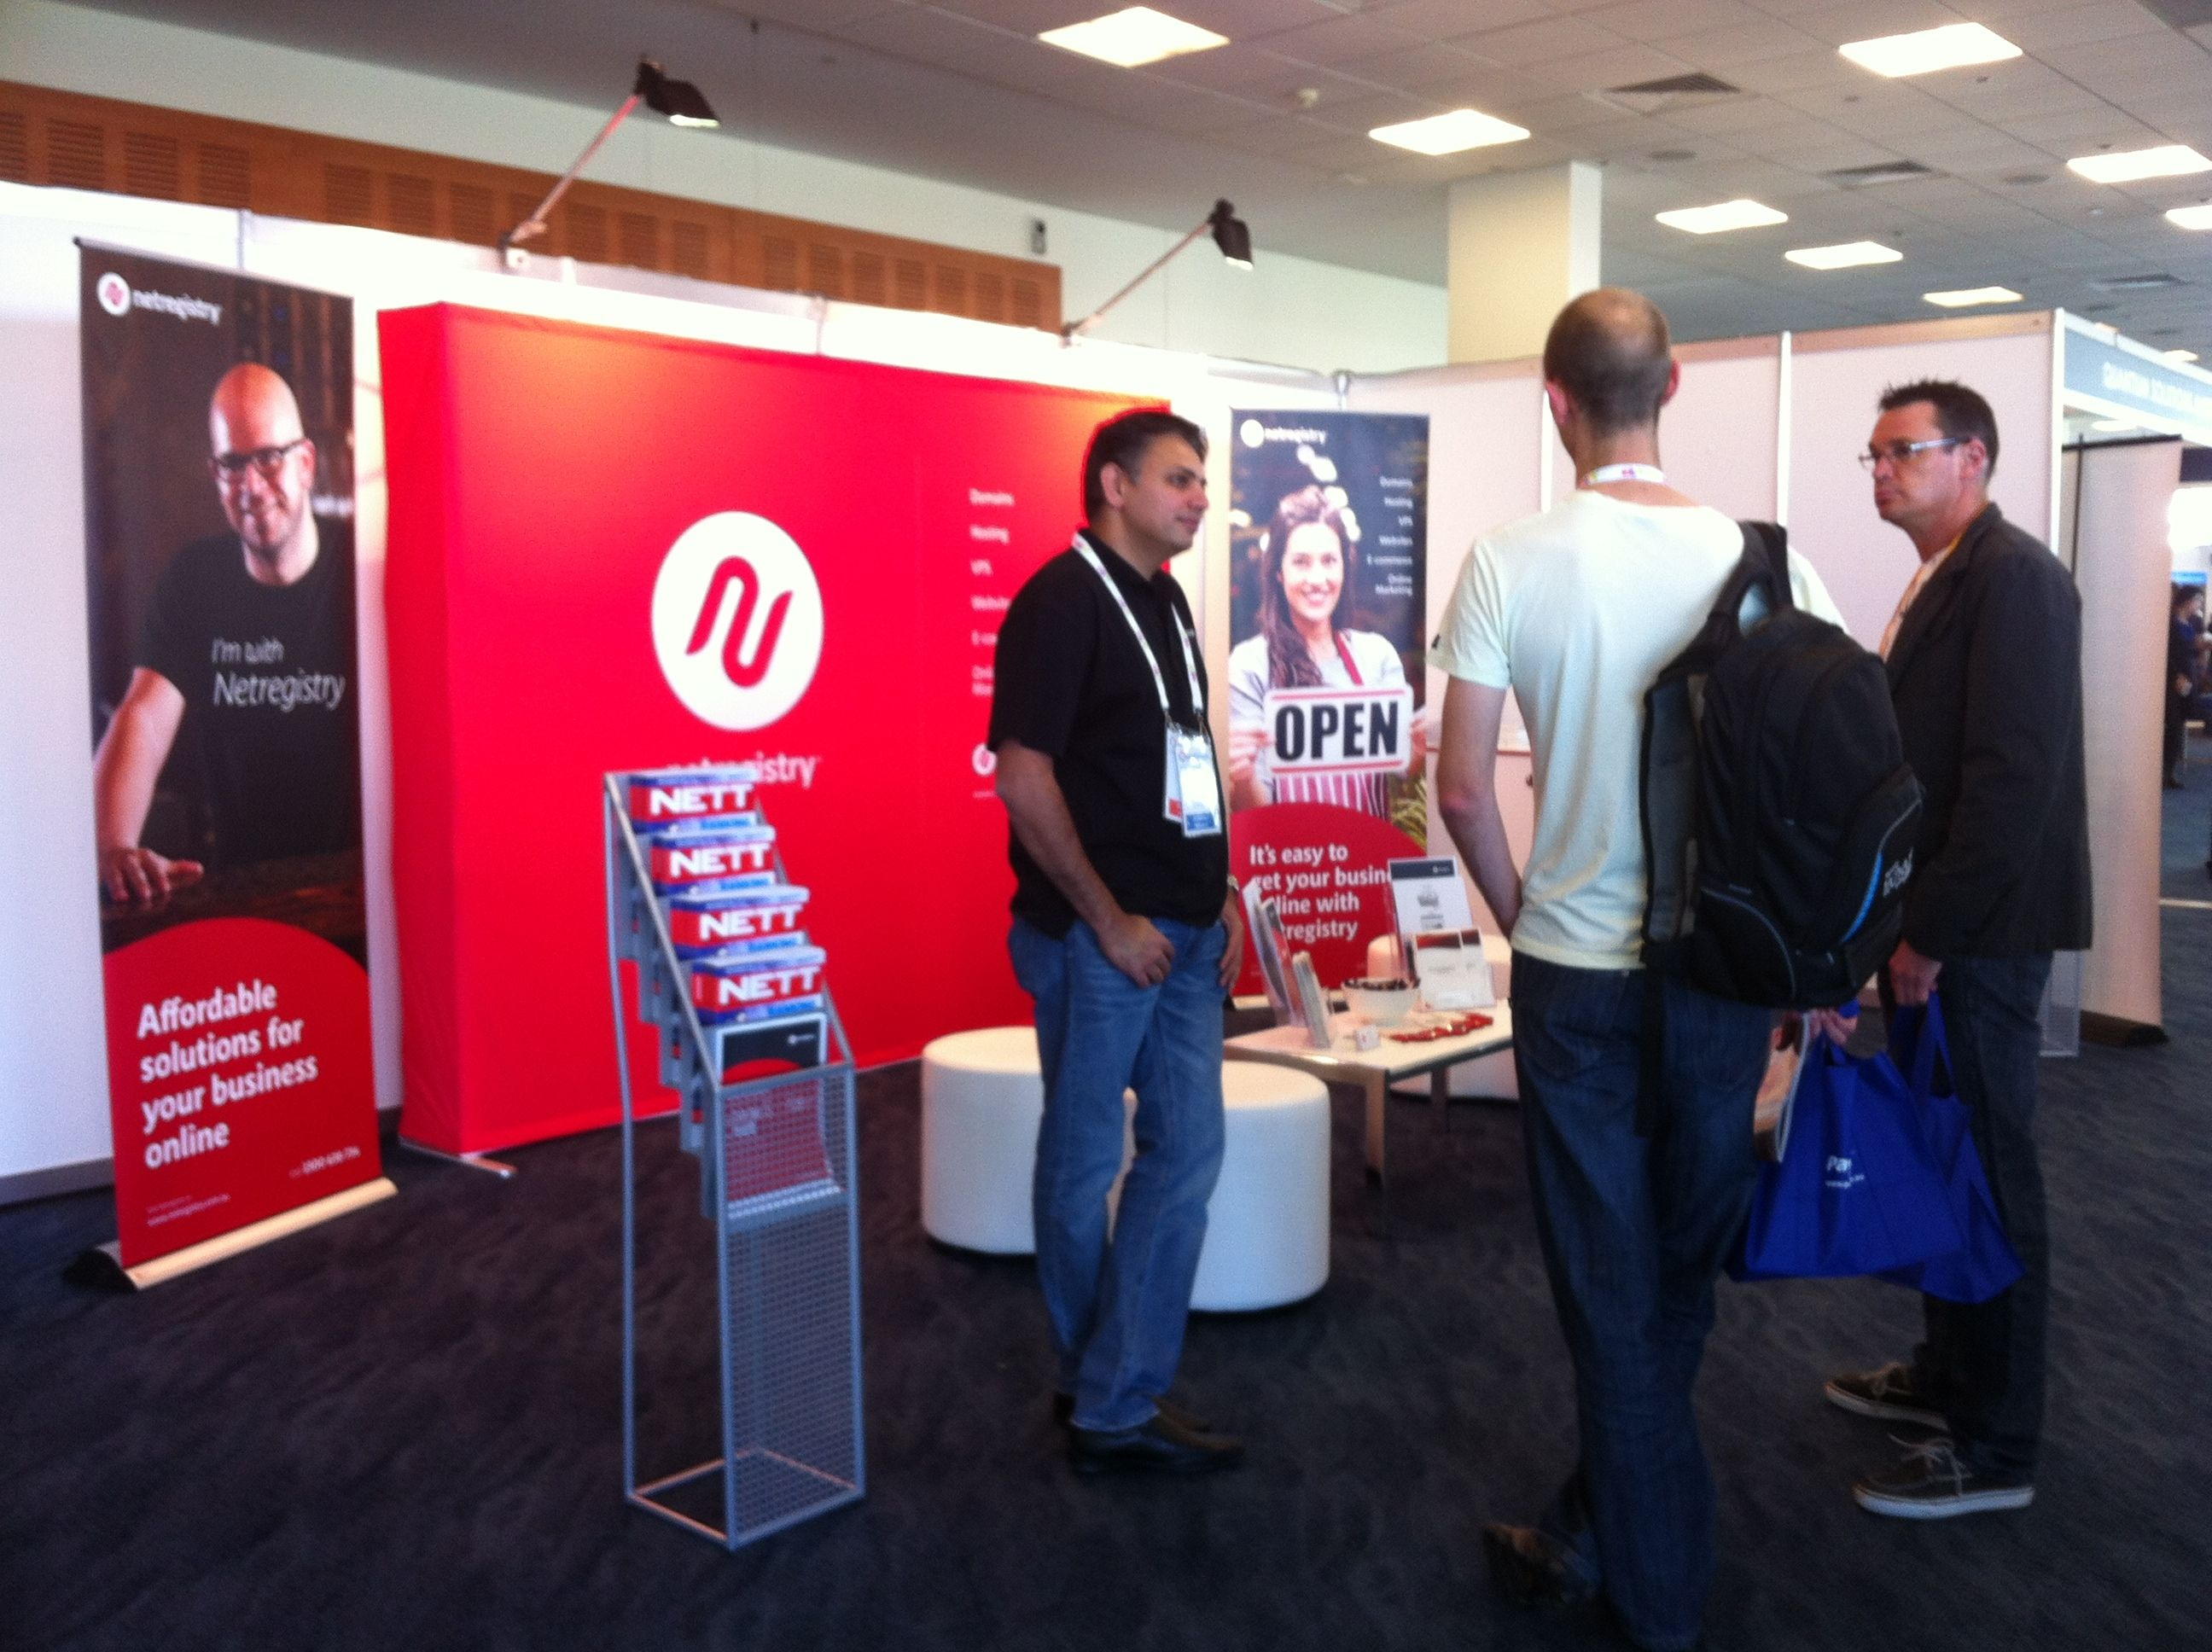 Netregistry at the Internet Conference, Gold Coast.